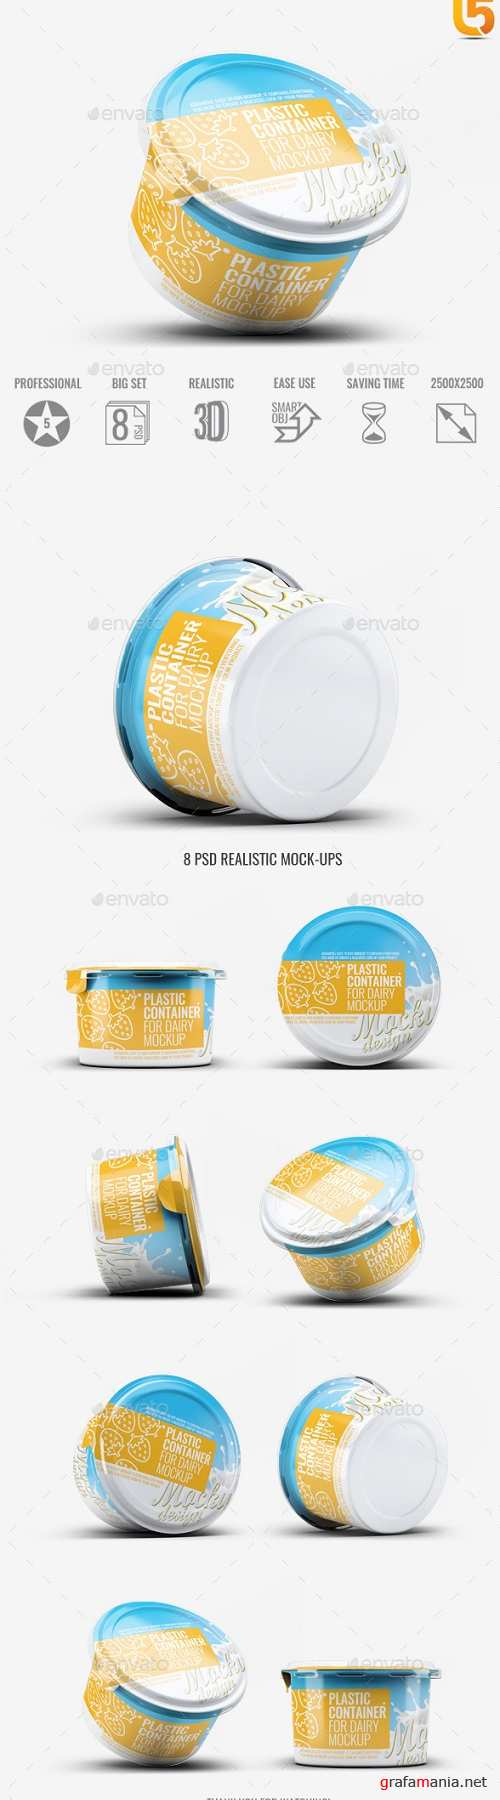 Plastic Container for Dairy Mock-Up - 21792519